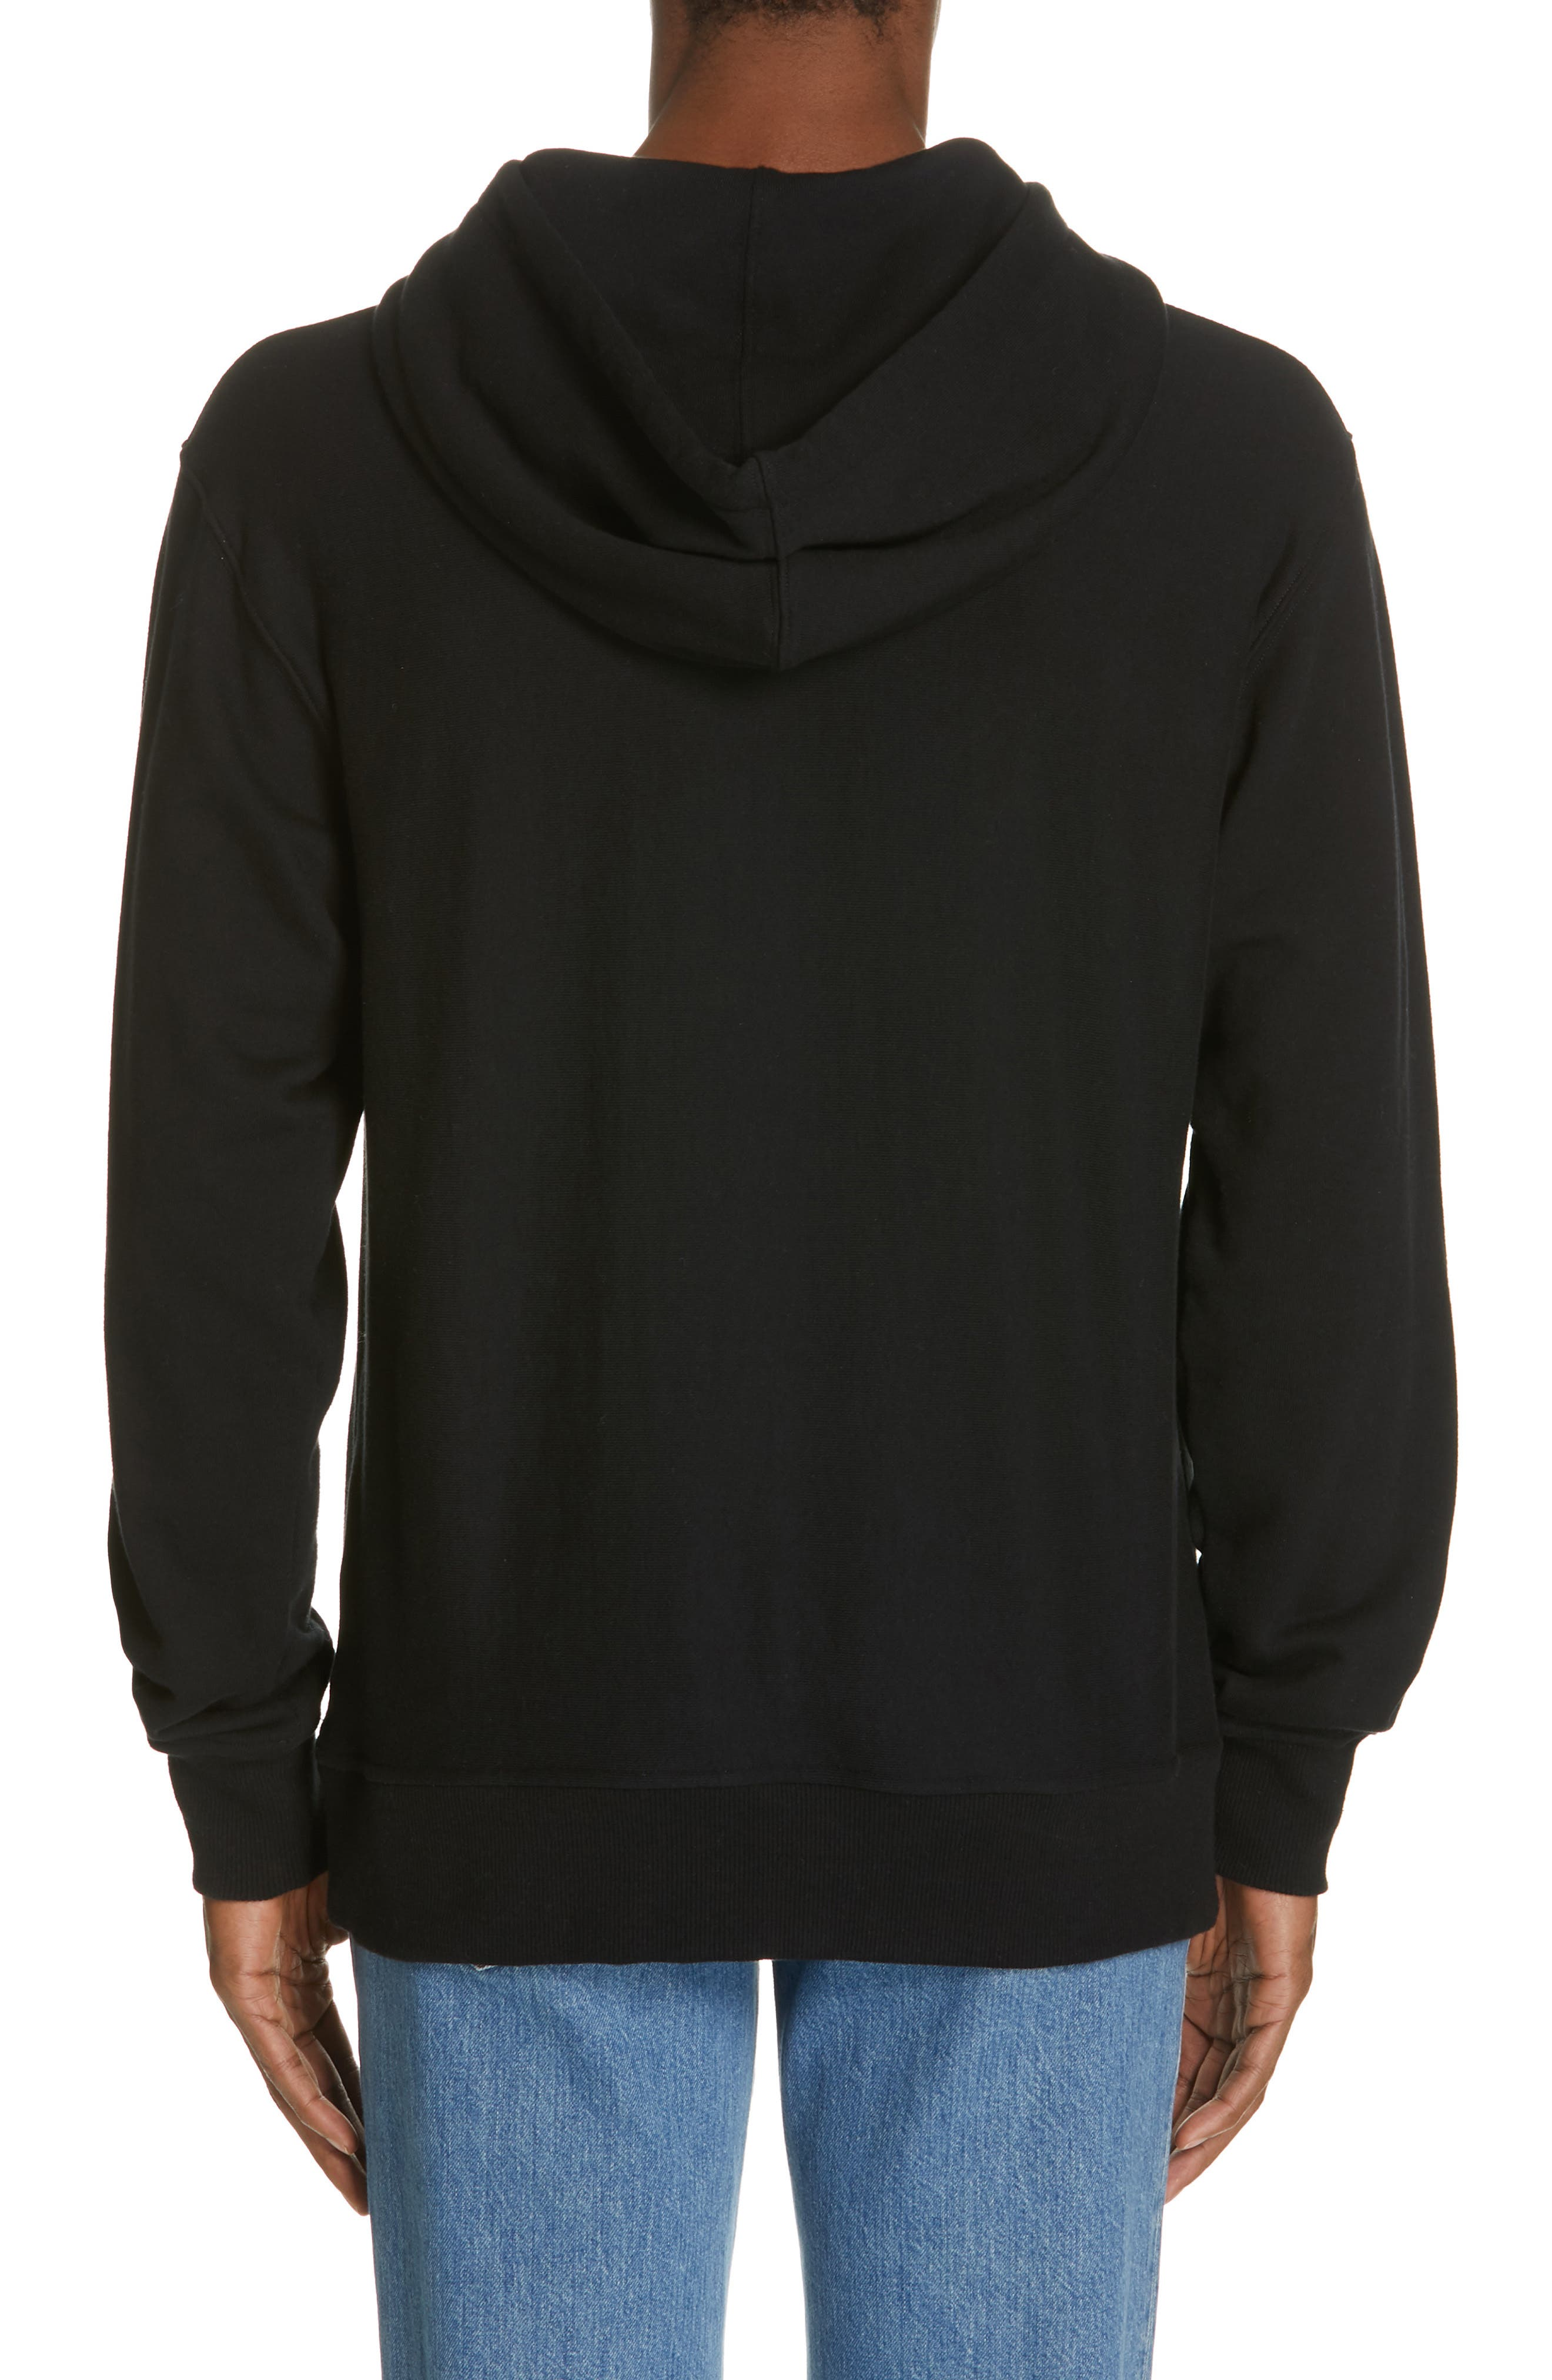 CALVIN KLEIN 205W39NYC, Jaws Graphic Hoodie, Alternate thumbnail 2, color, BLACK